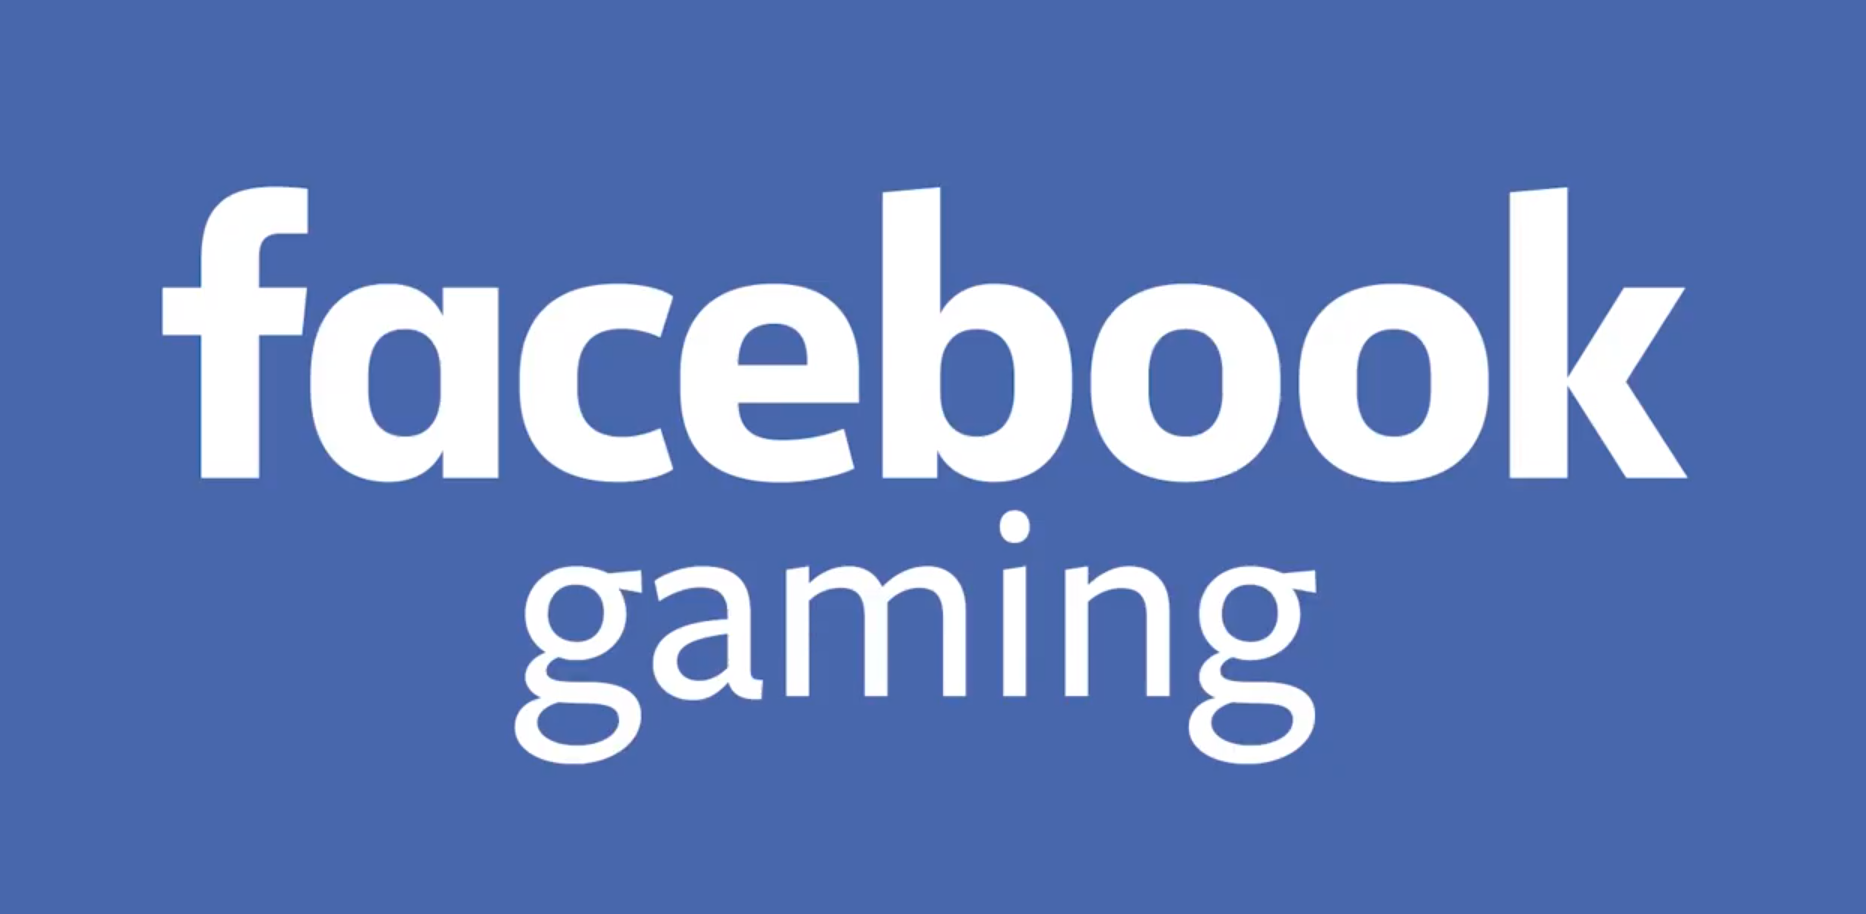 Facebook is currently working on a section made specifically for gamers